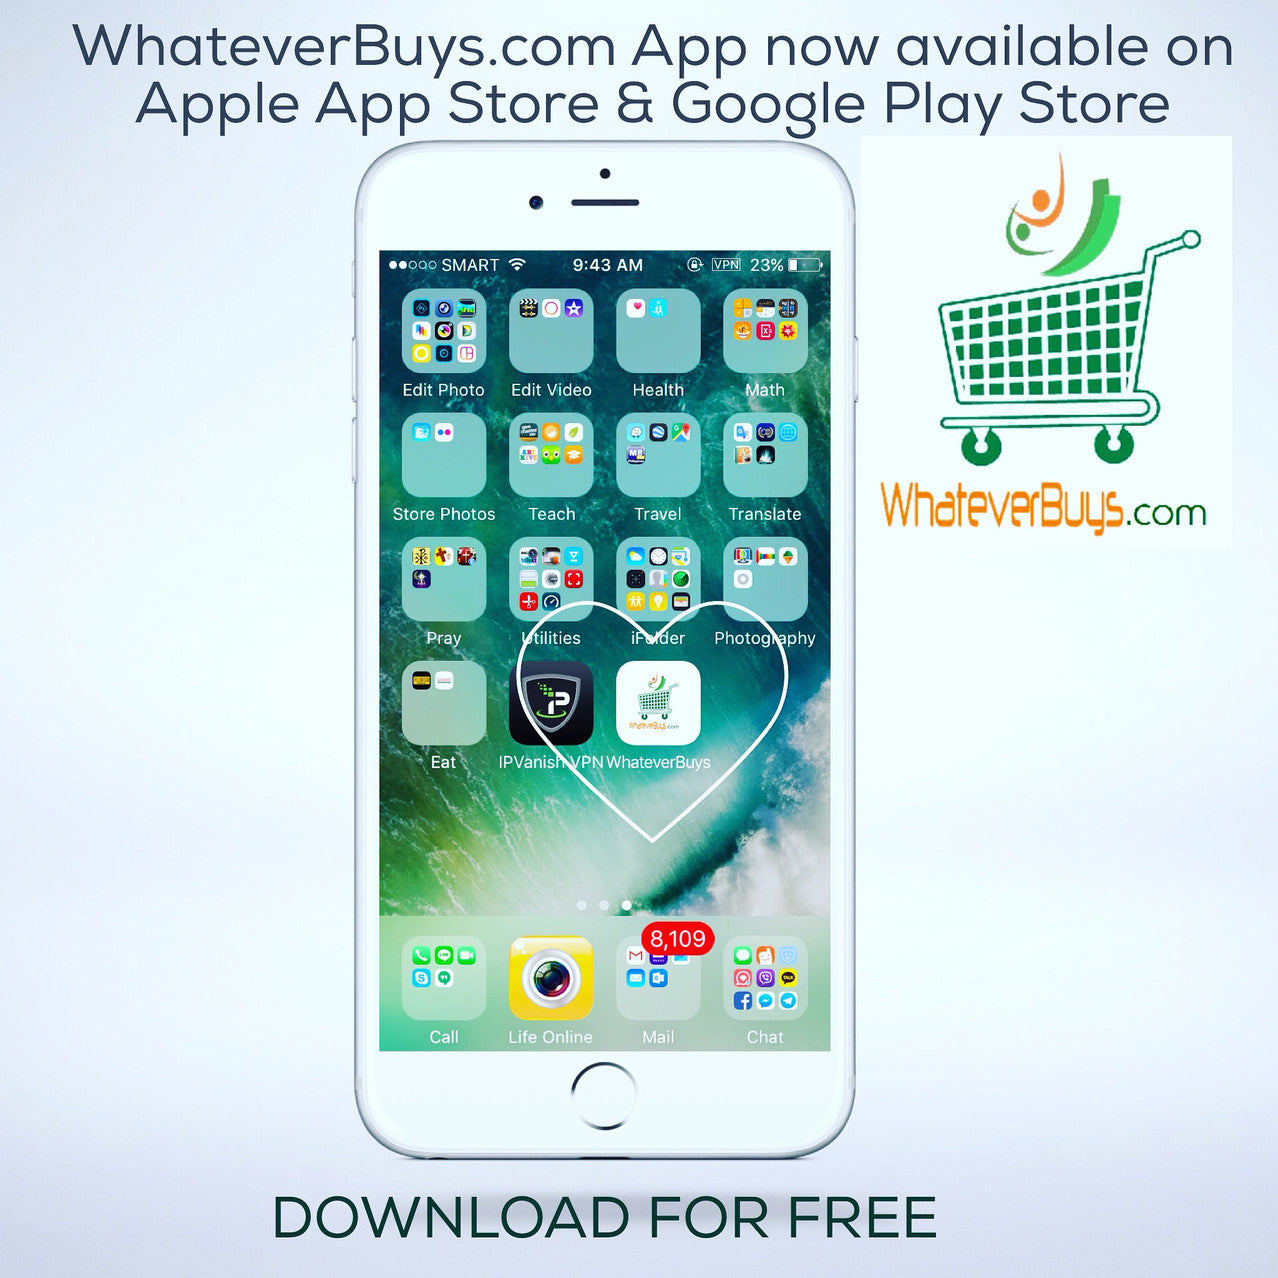 Download WhateverBuys.com App FREE on the Apple AppStore and Google Play Store